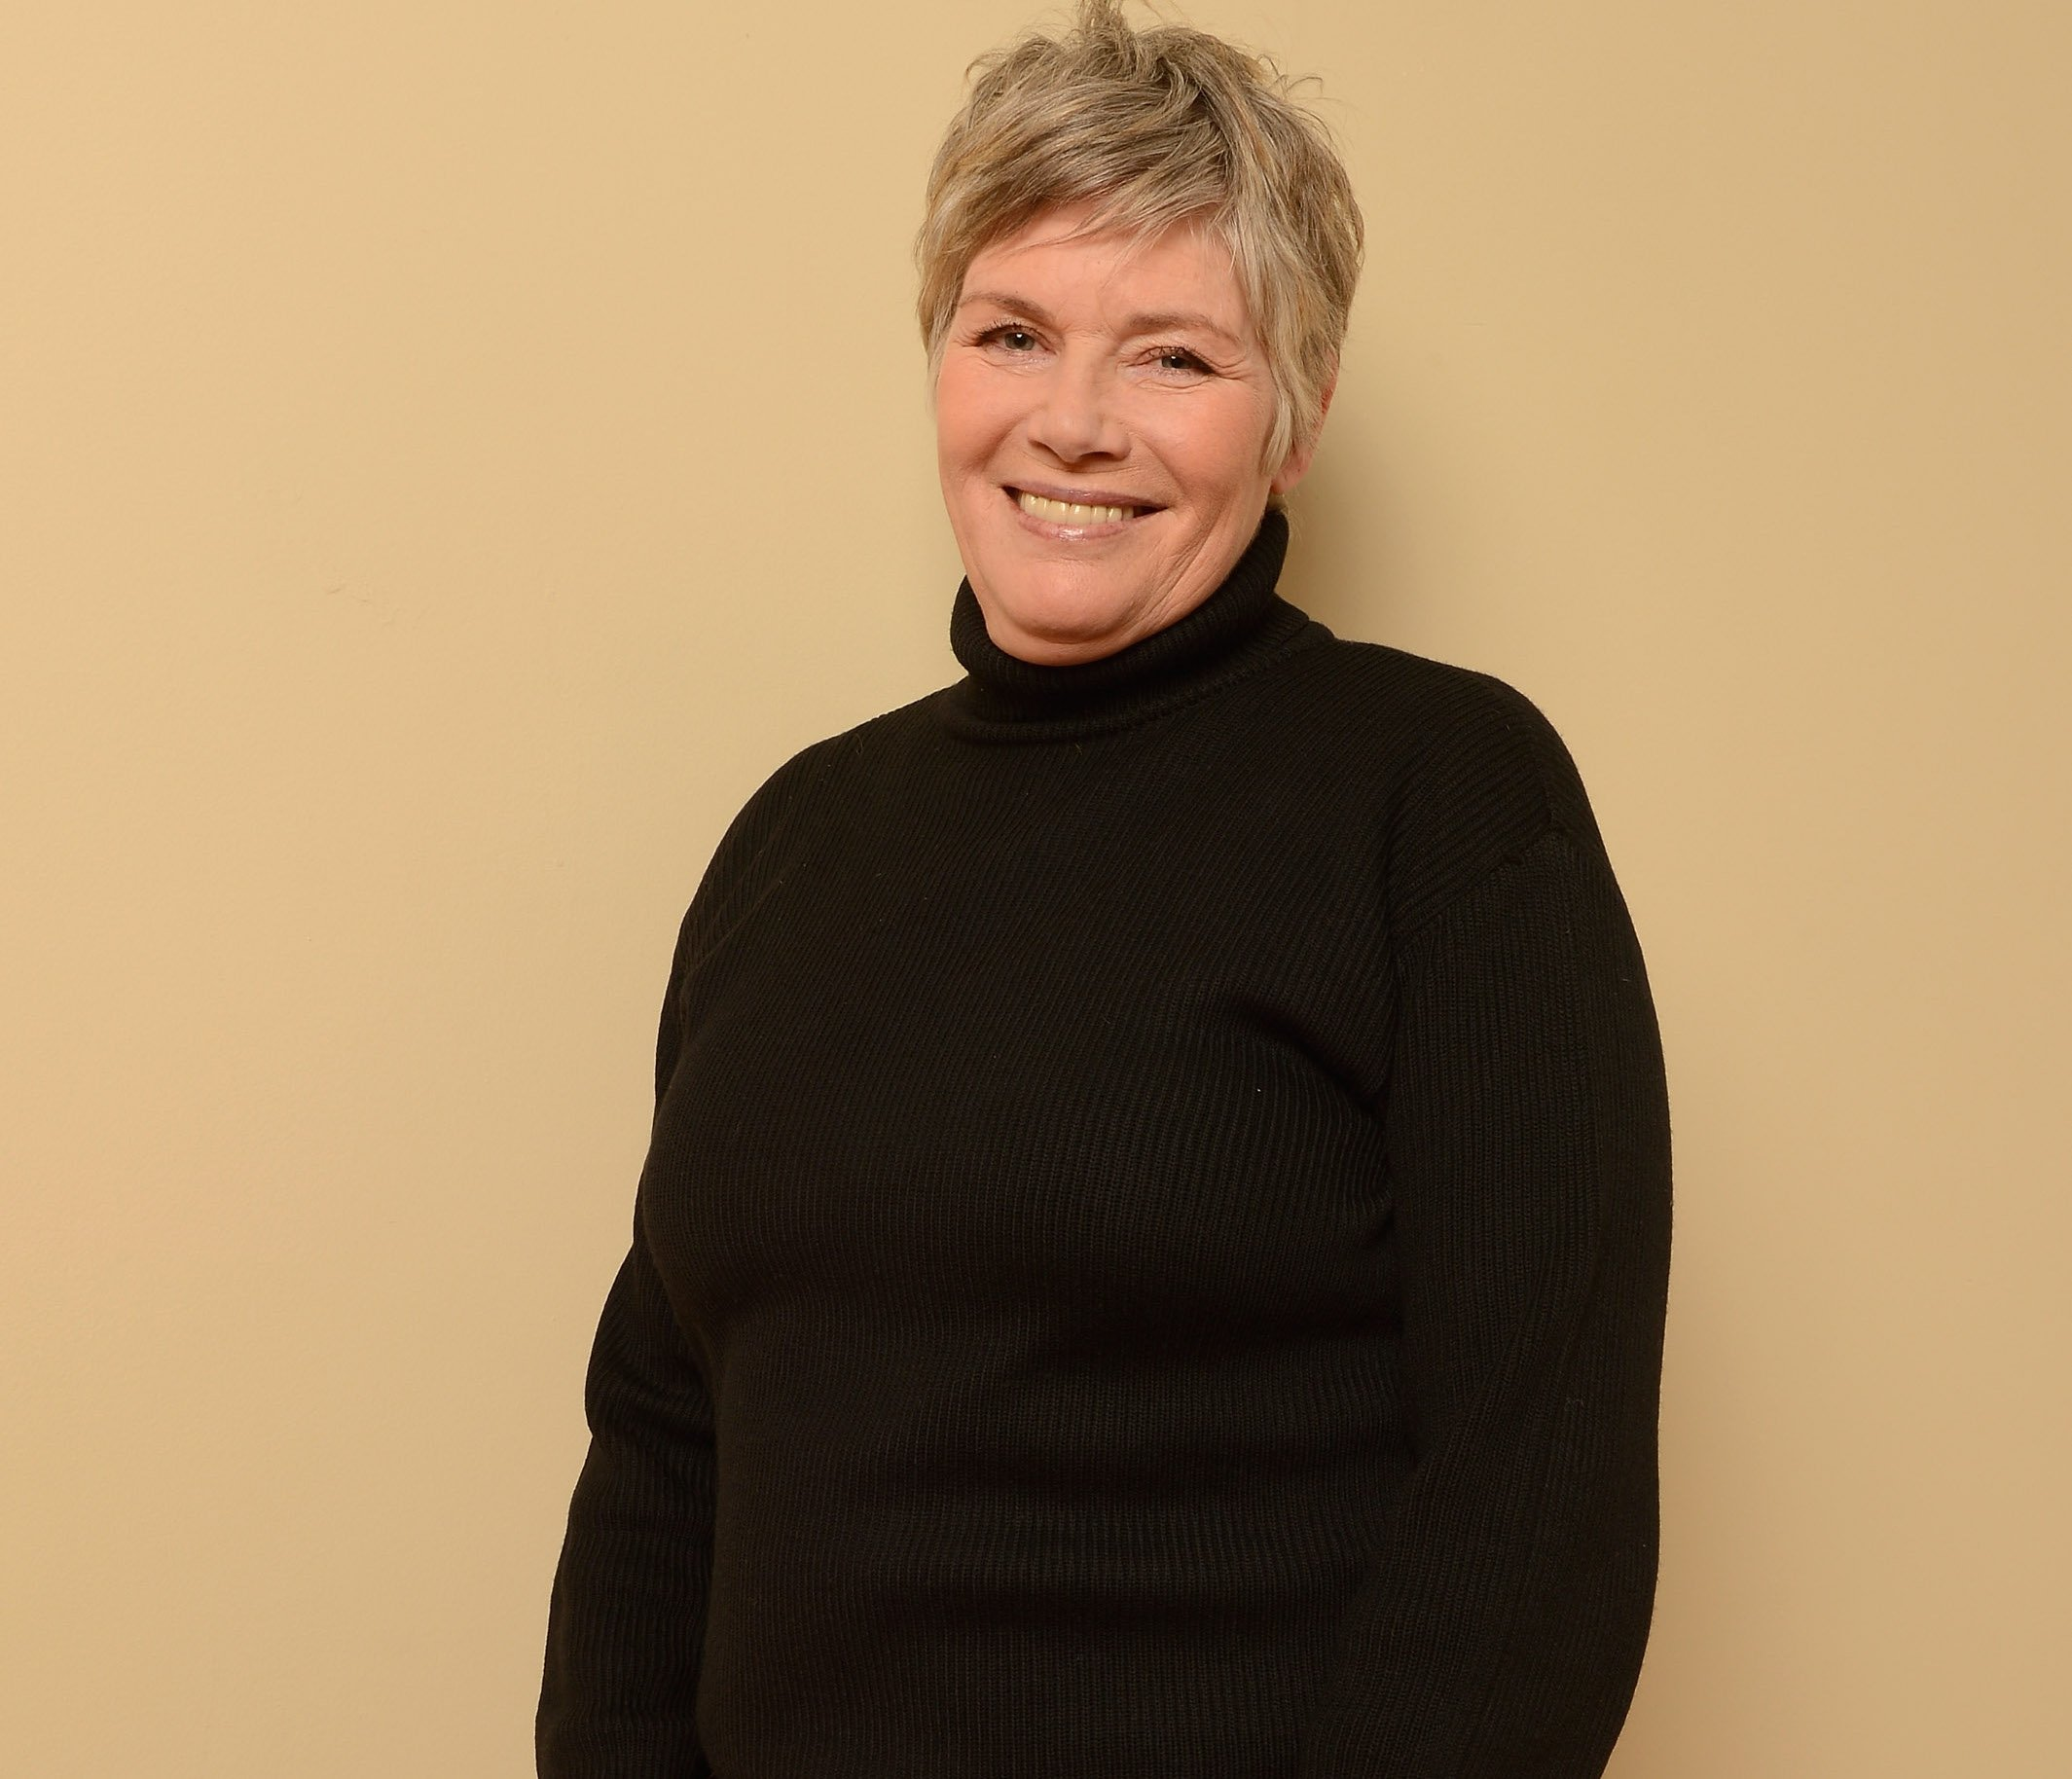 GettyImages 159698058 Remember Kelly McGillis? Here's What She Looks Like Now!